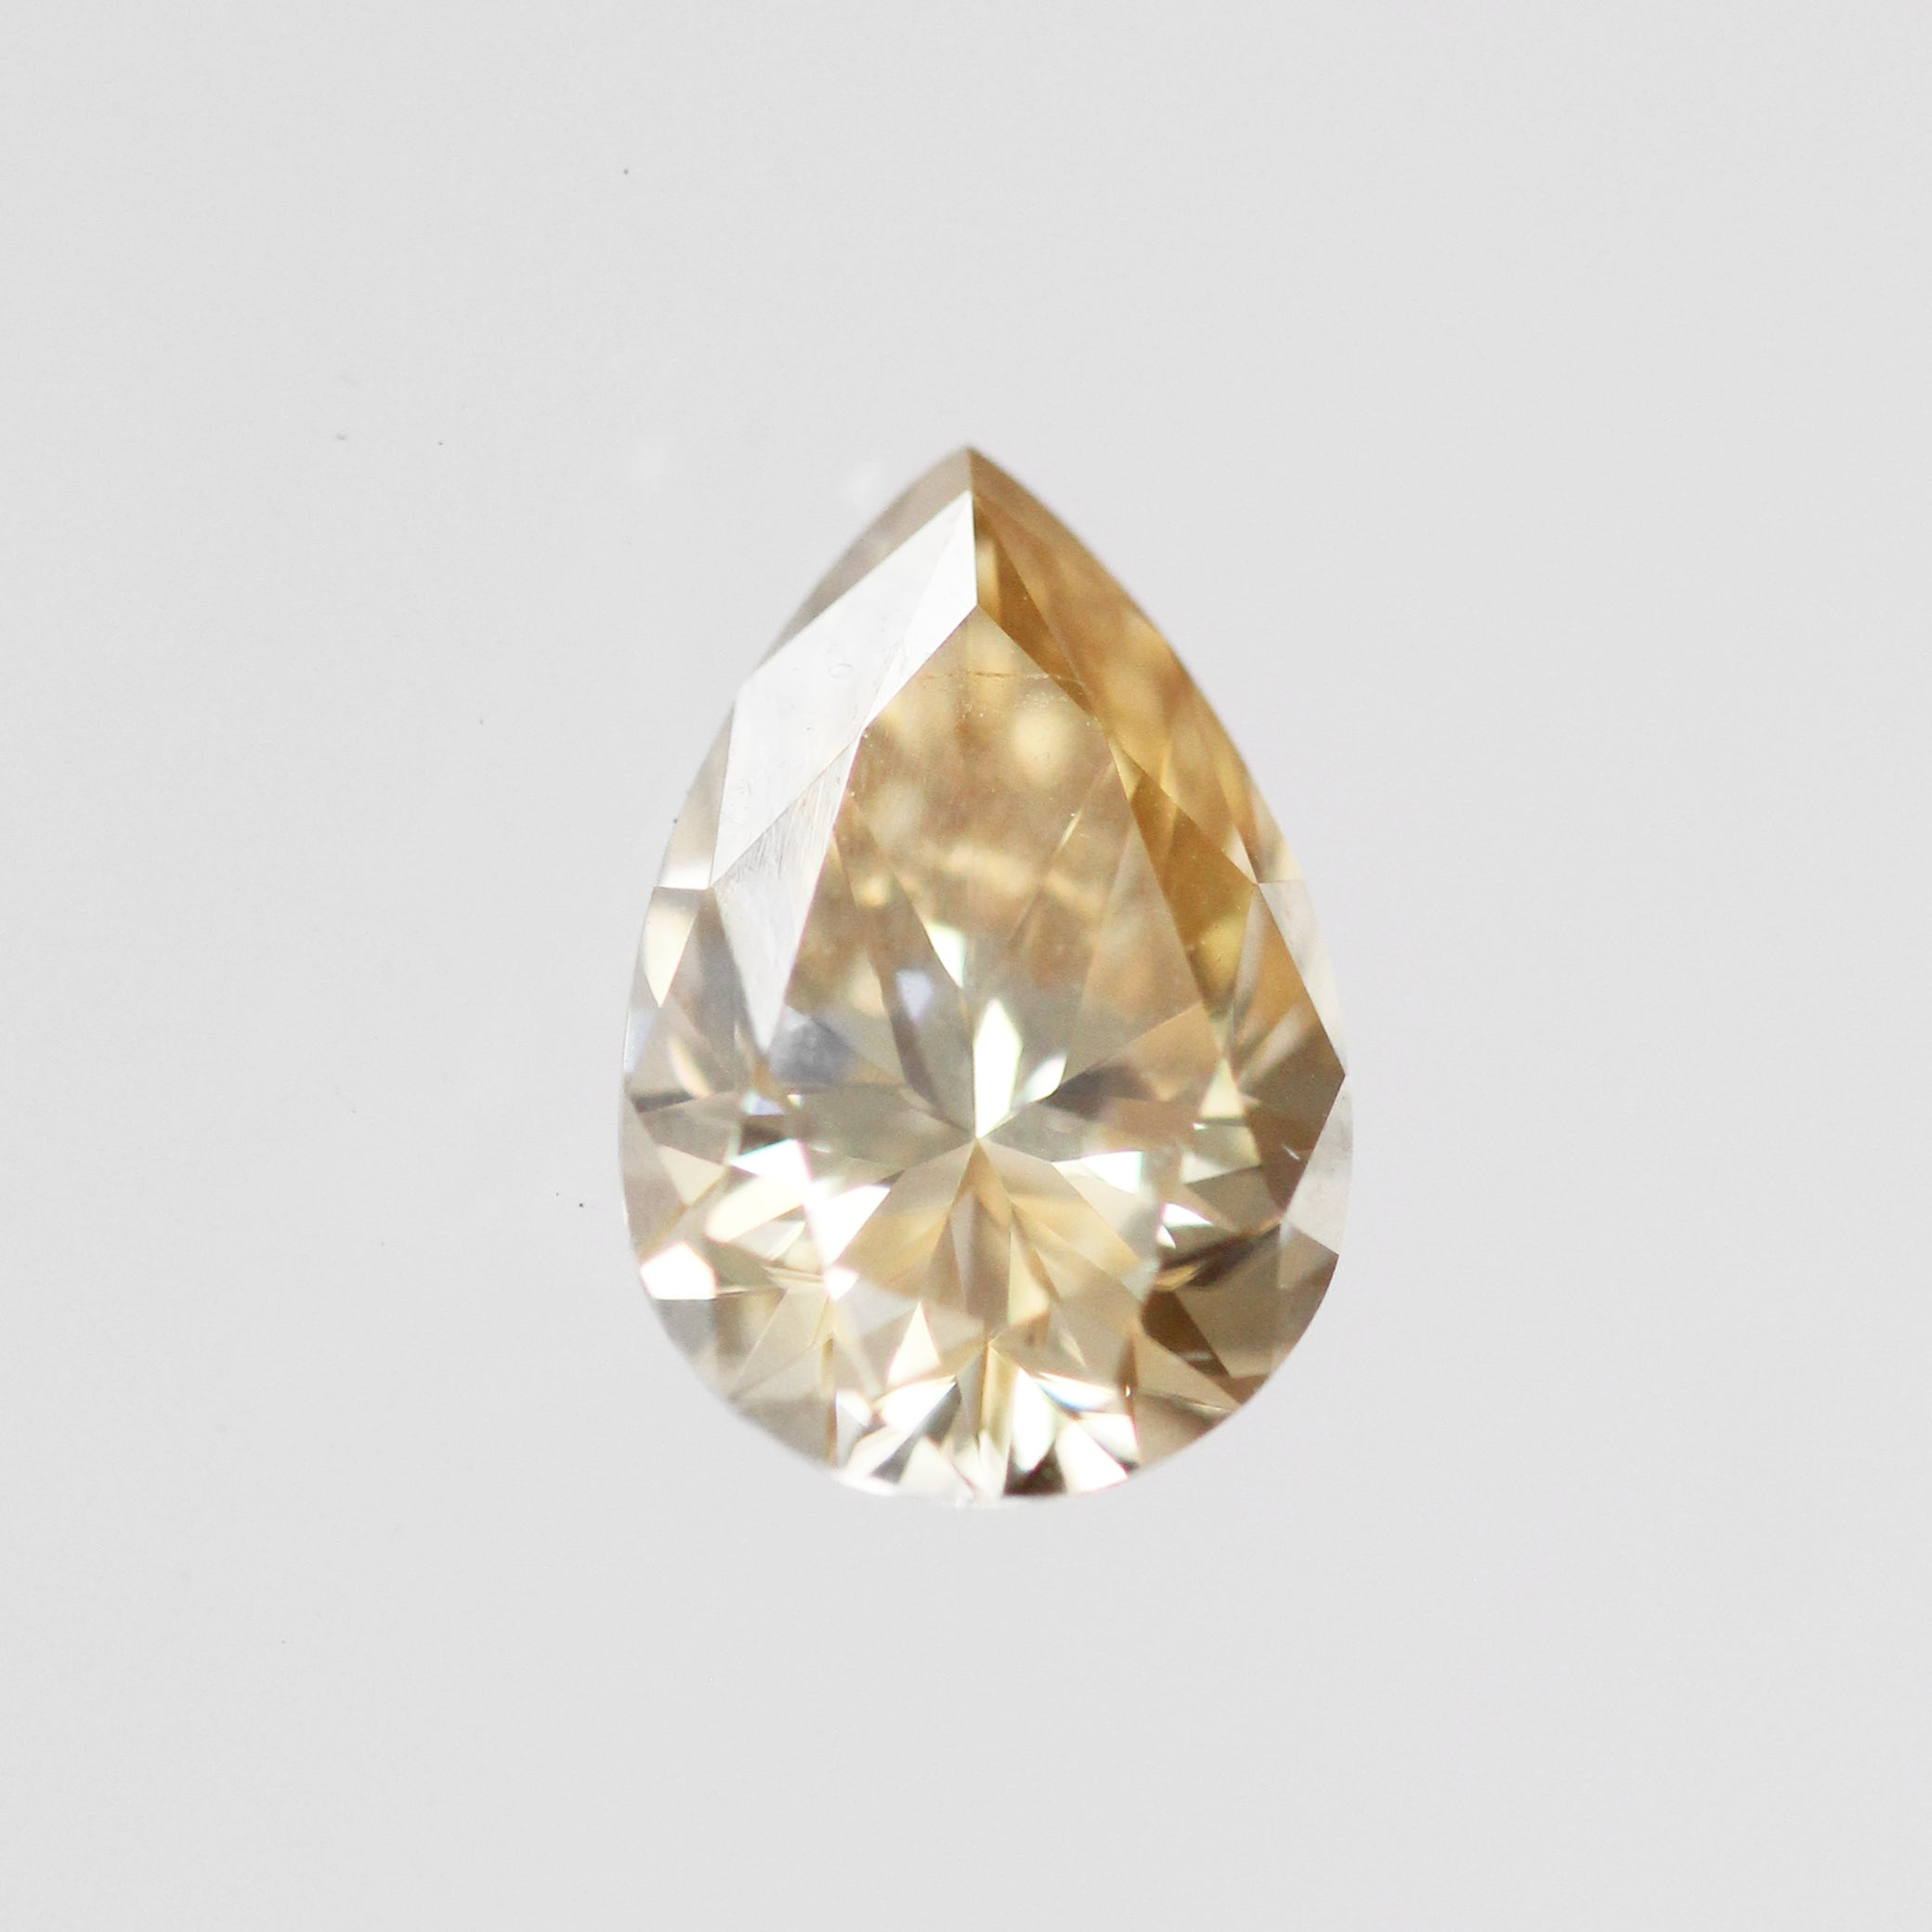 1.80 Carat Pear Moissanite- Inventory Code PBMOI180 - Celestial Diamonds ® by Midwinter Co.